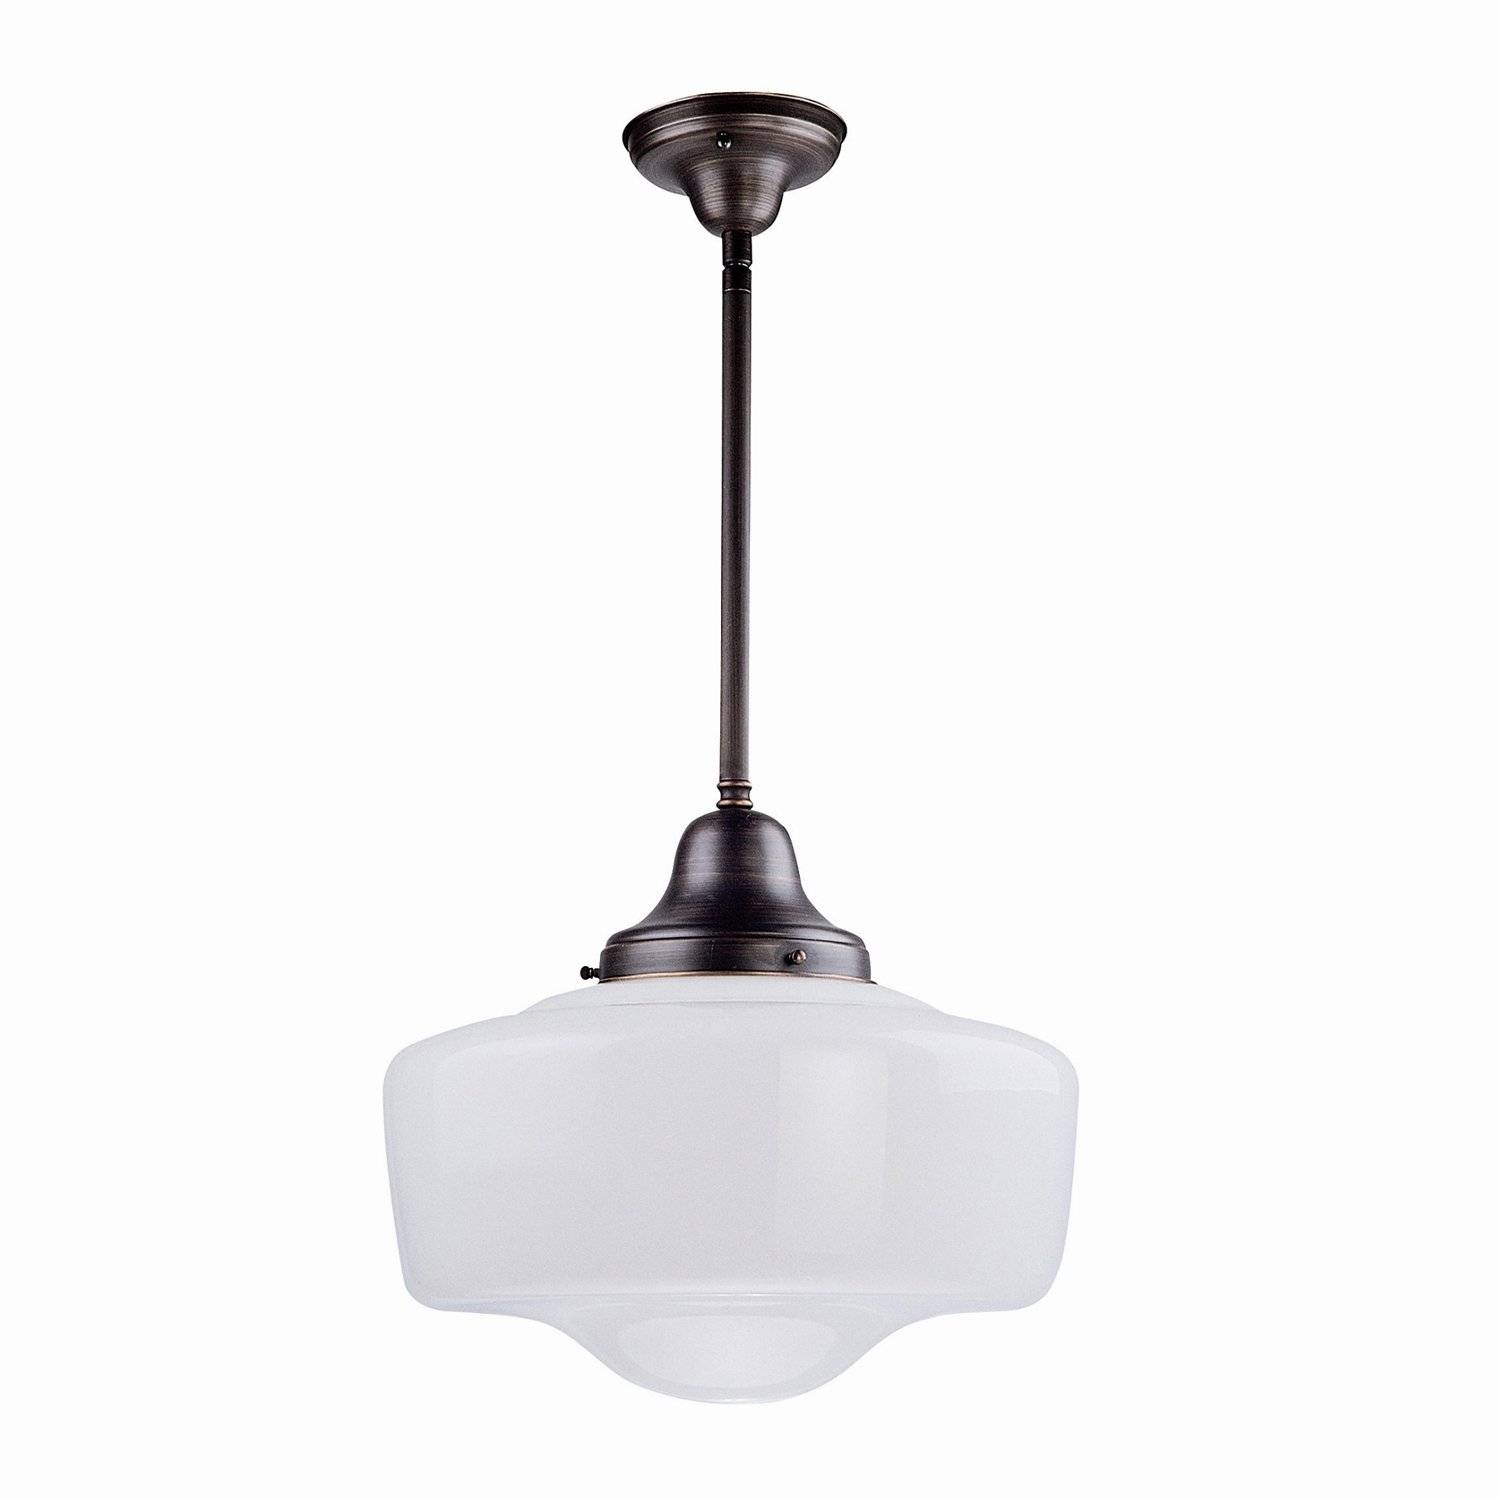 Dvi Dvp7521 Schoolhouse Pendant | Lowe's Canada regarding Schoolhouse Pendant Lights (Image 6 of 15)